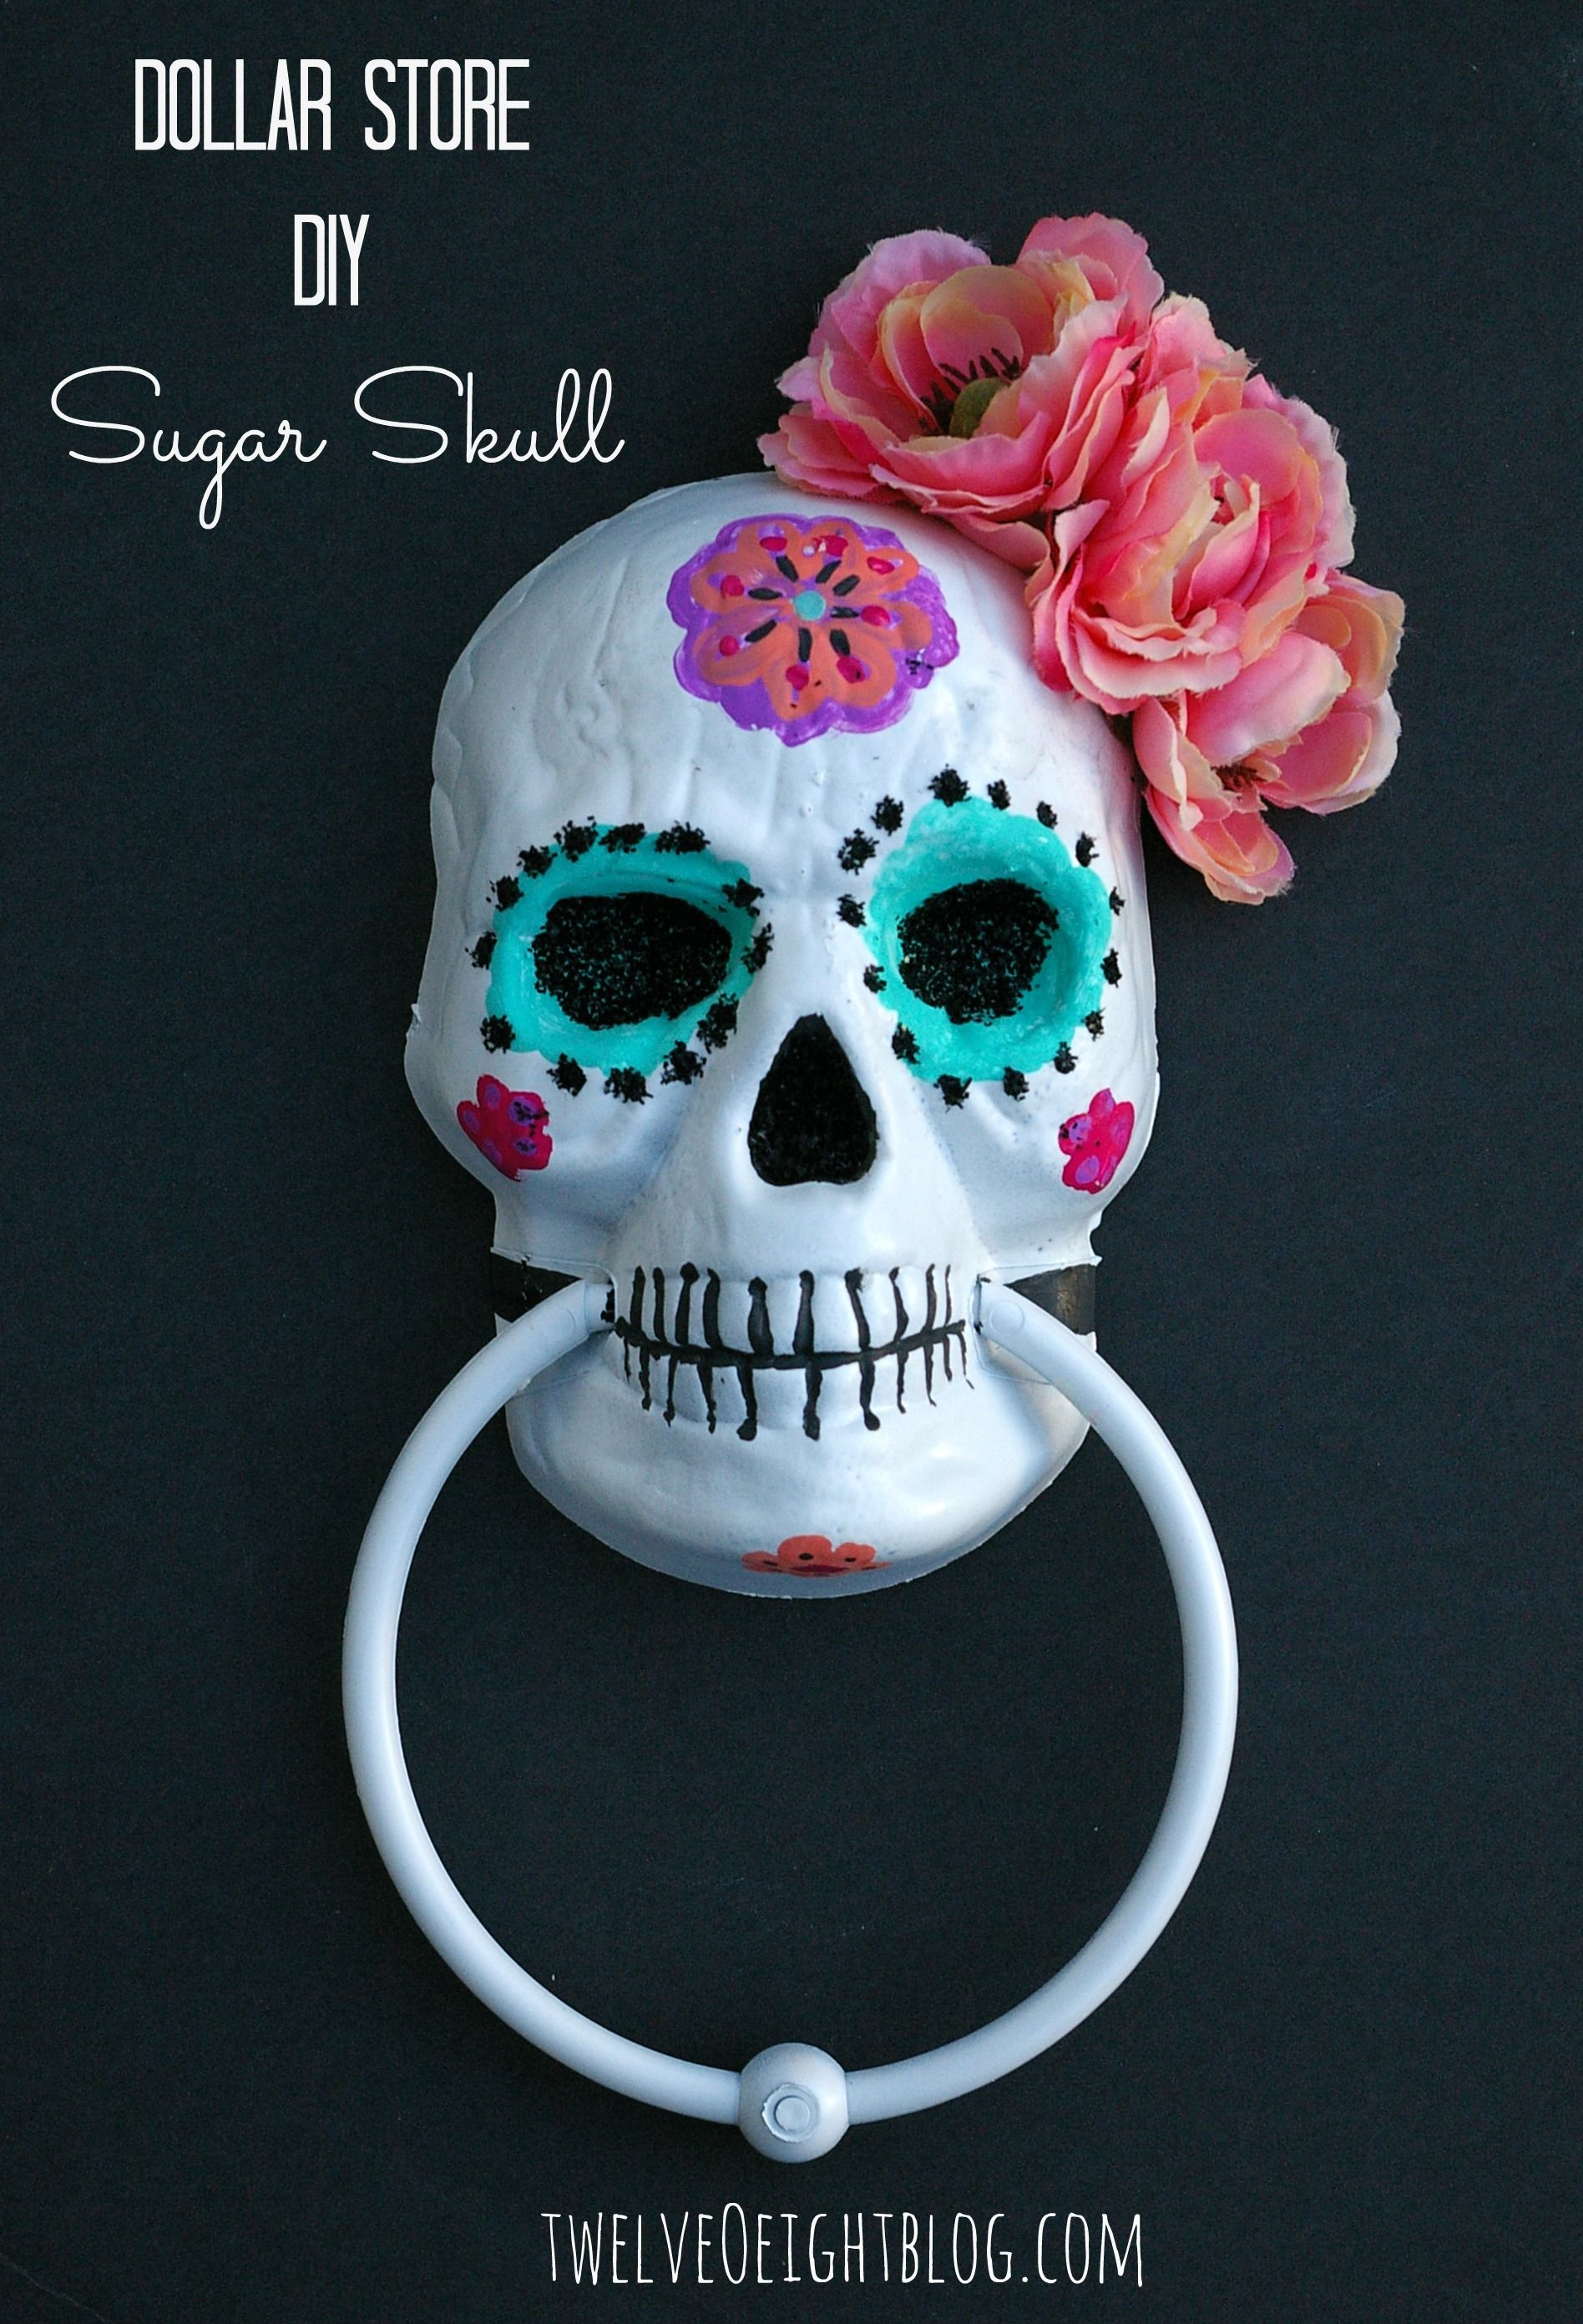 Sugar Skull Bathroom Decor Diy Dollar Store Painted Sugar Skull I Bought One Of These From